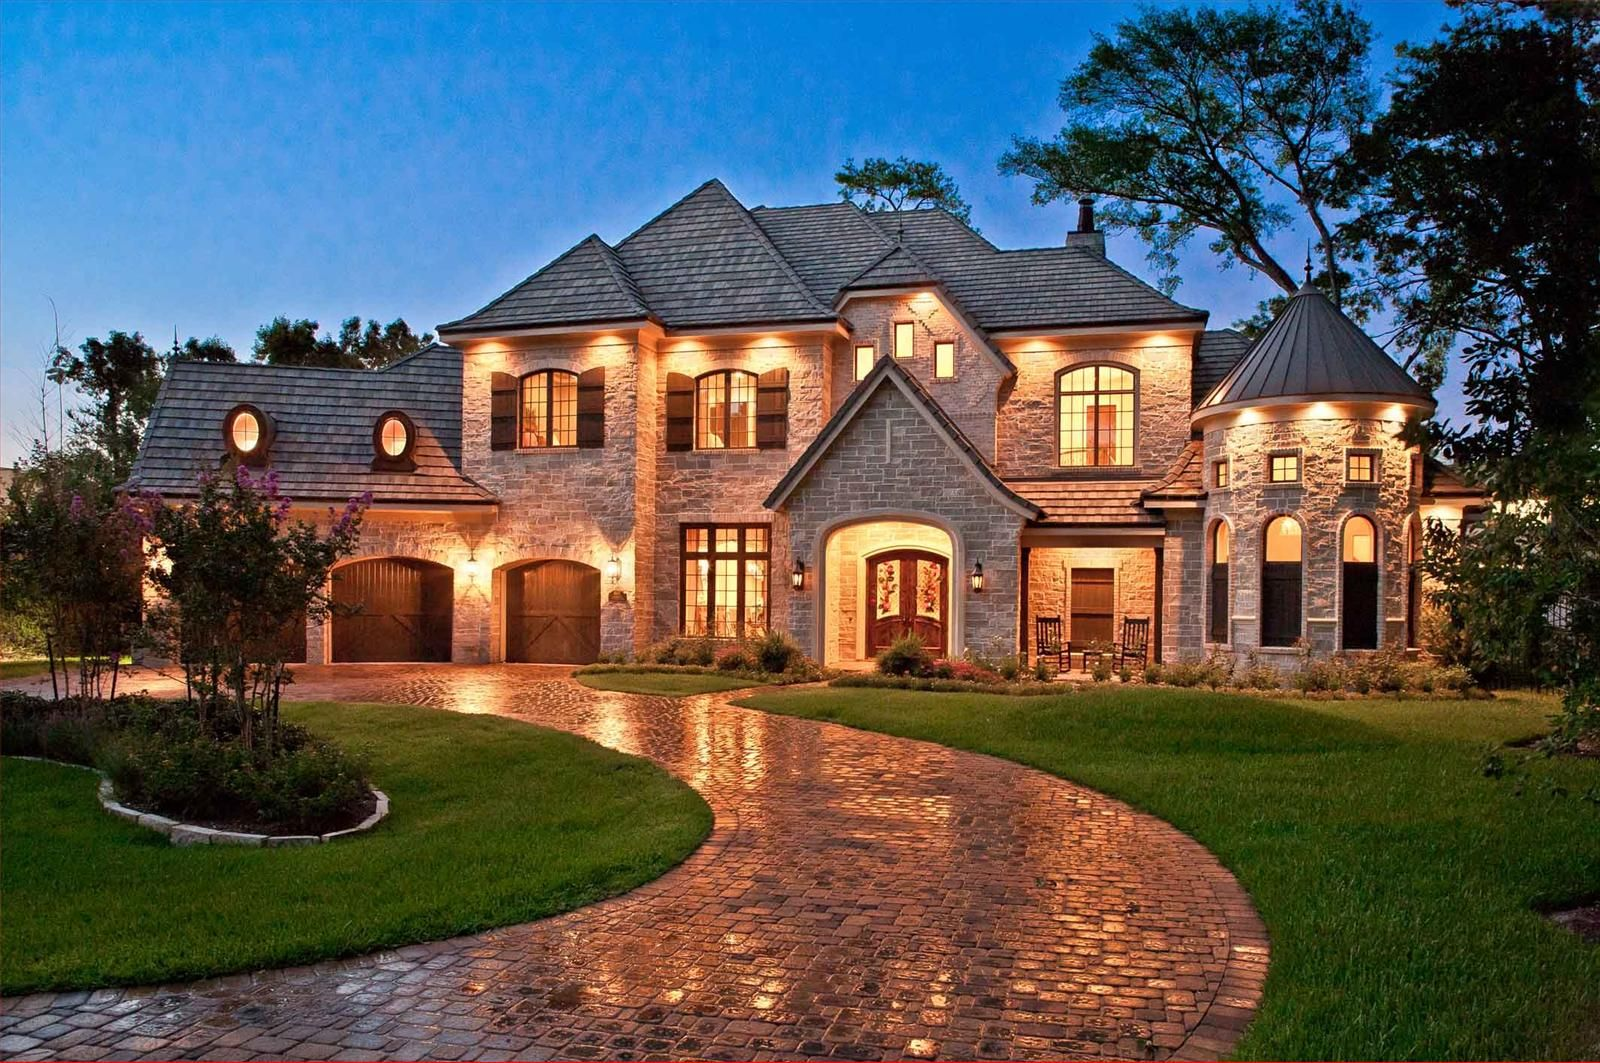 Gorgeous French Country House Design Exterior With Large